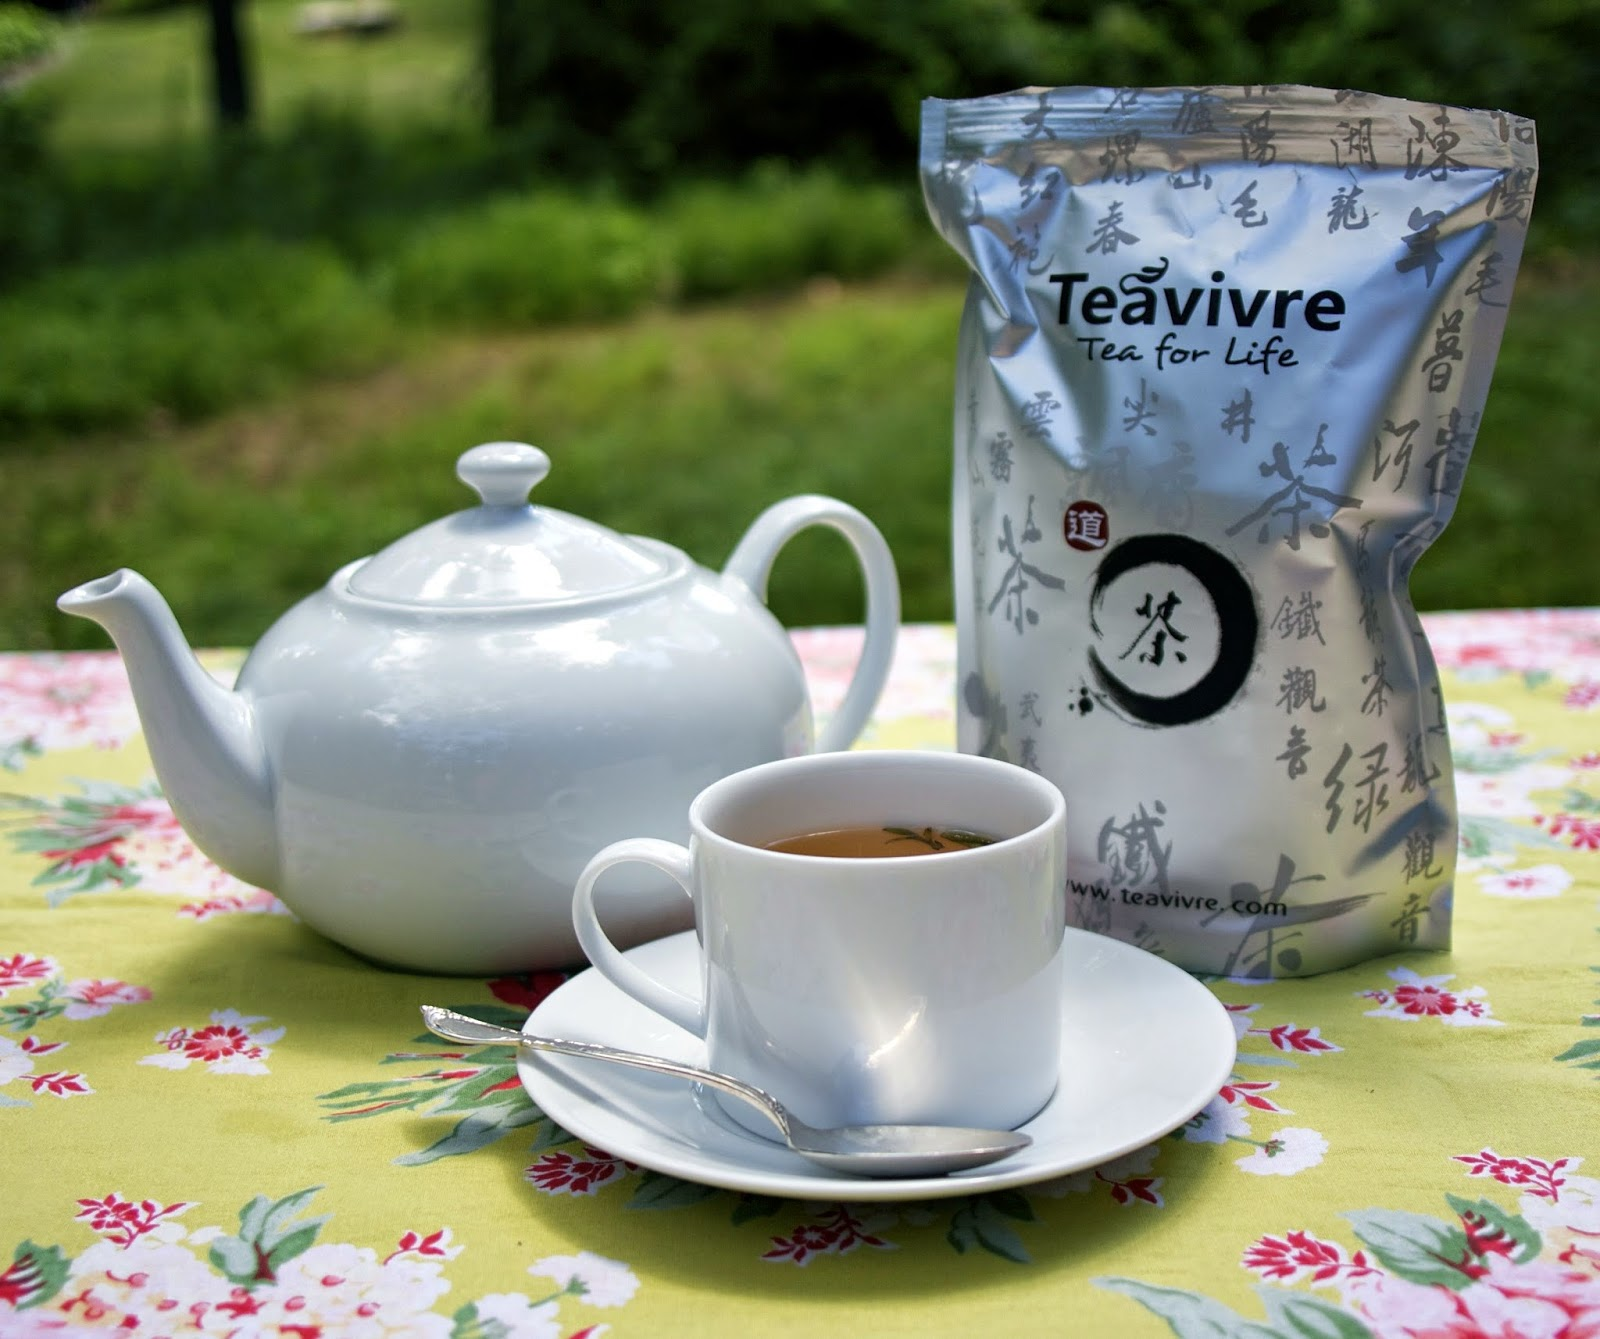 Teavivre: Green Tea: simplelivingeating.com